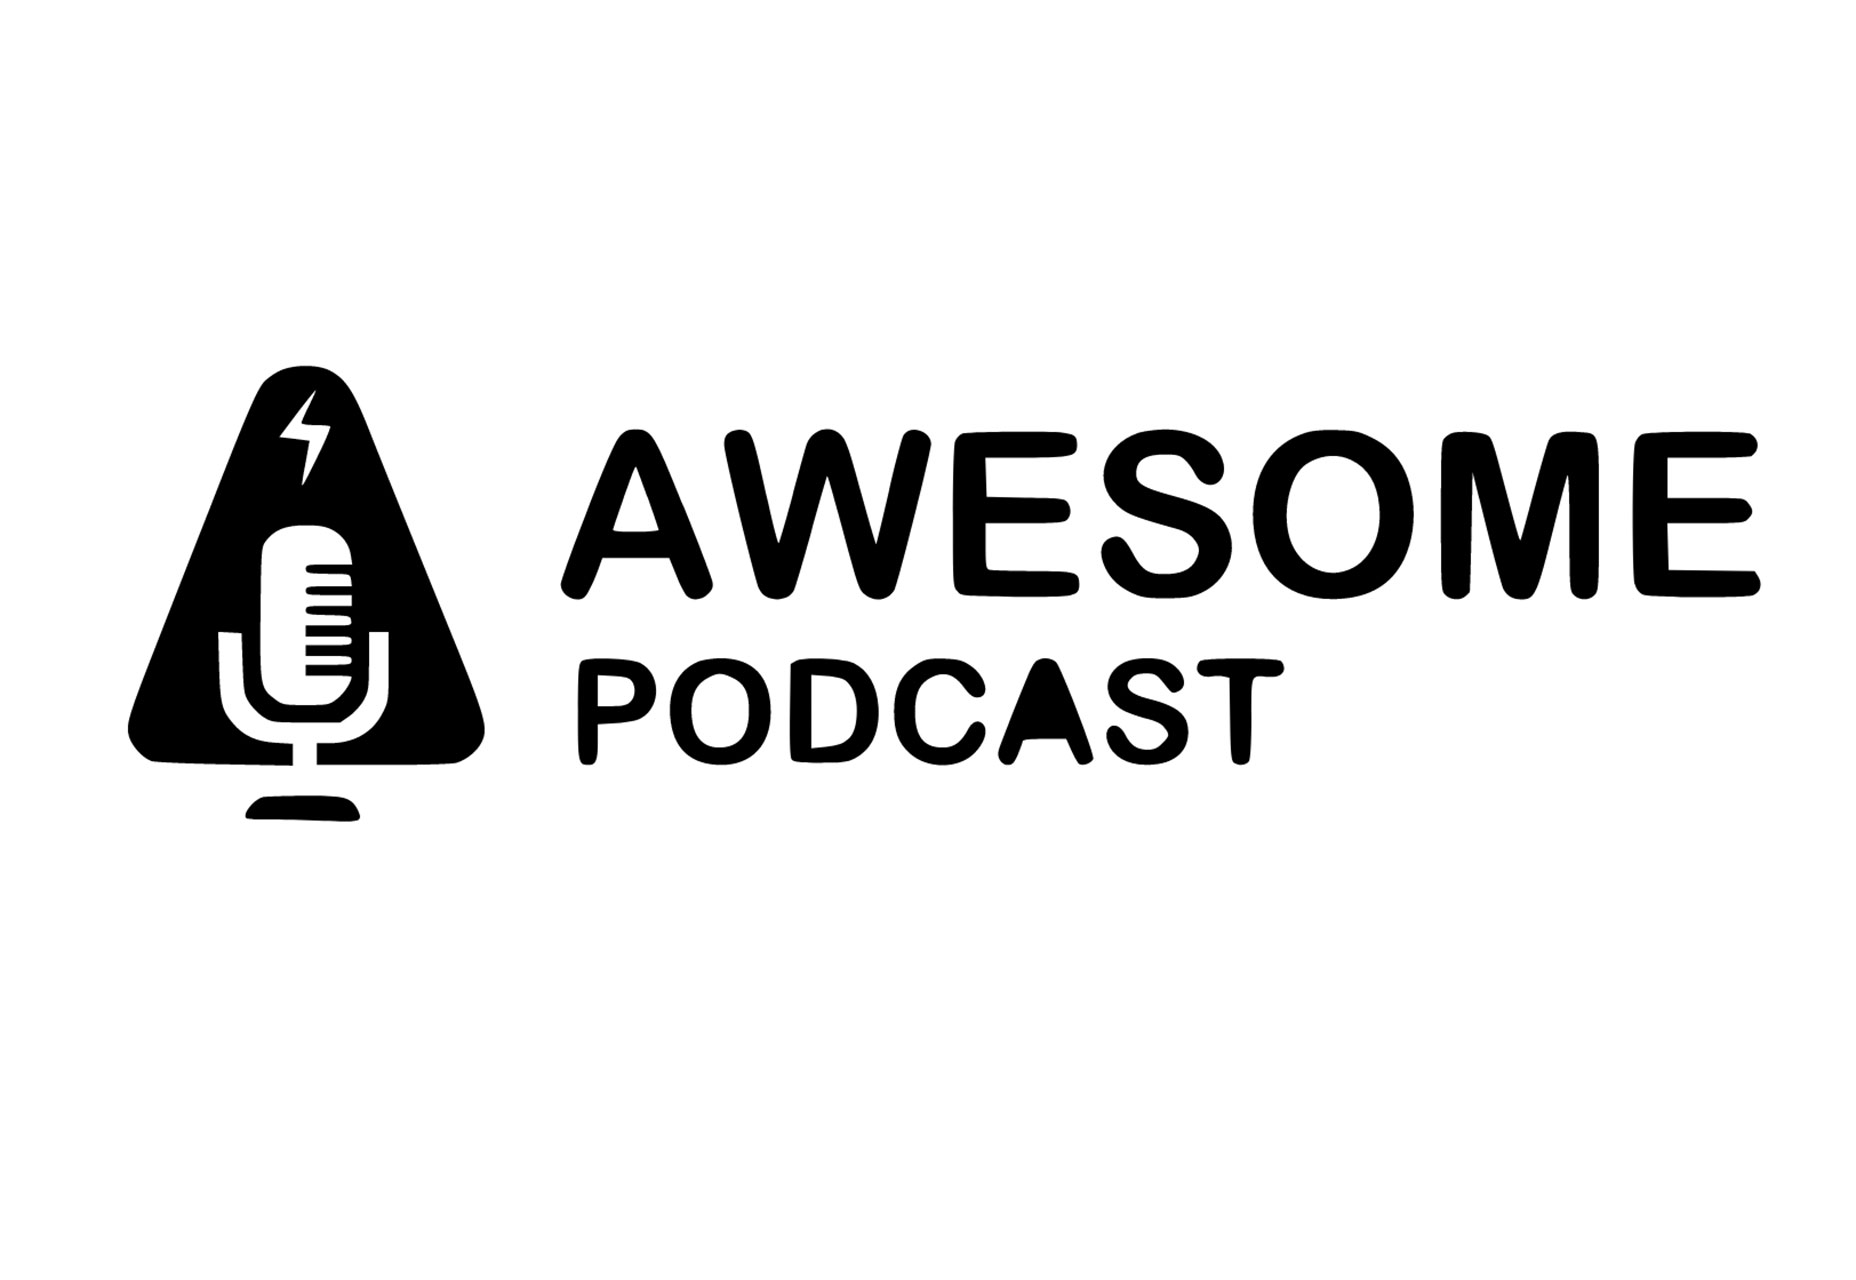 awesomepod